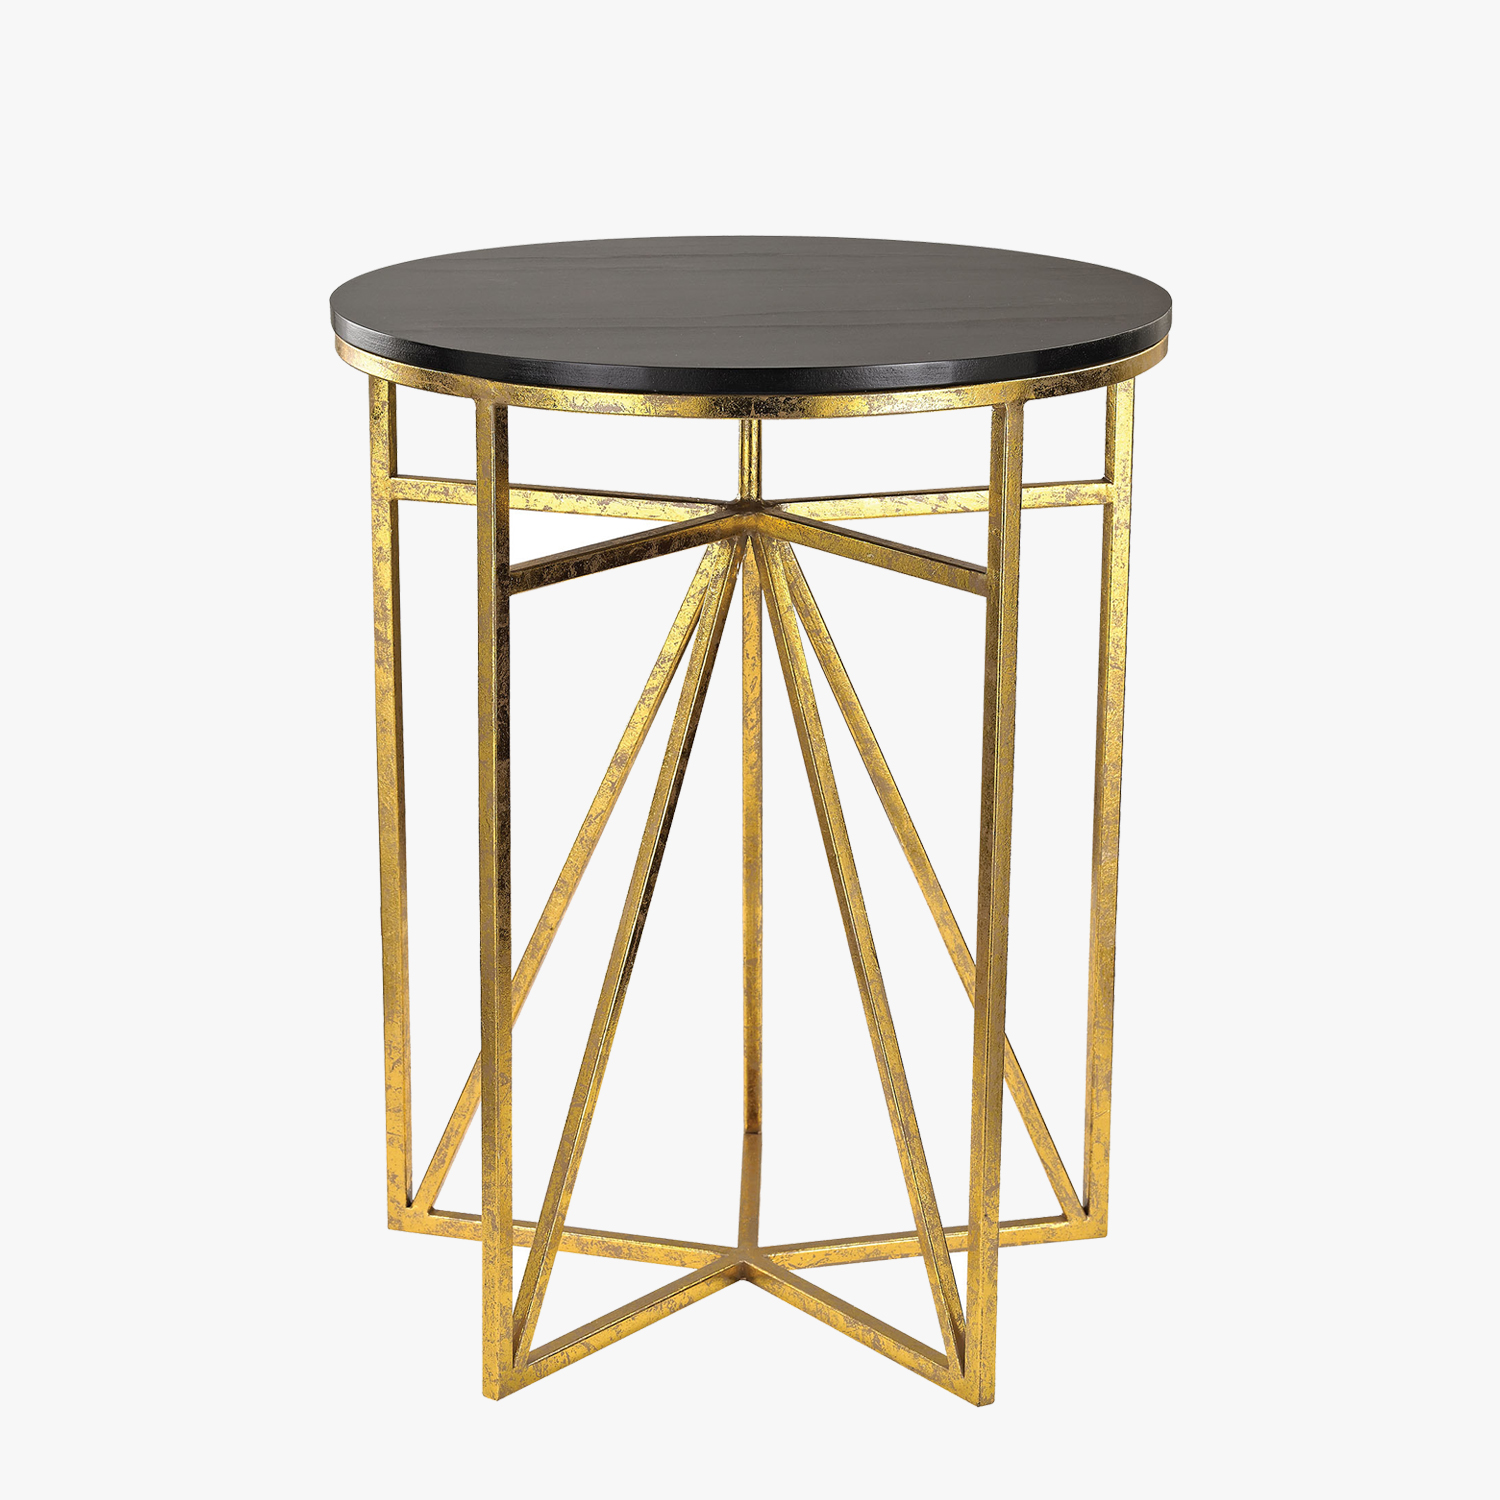 etoile antique gold accent table dear keaton with drawer metal hairpin legs unique end tables target white bedside old side shelf kitchen ornate farmhouse dining set small battery